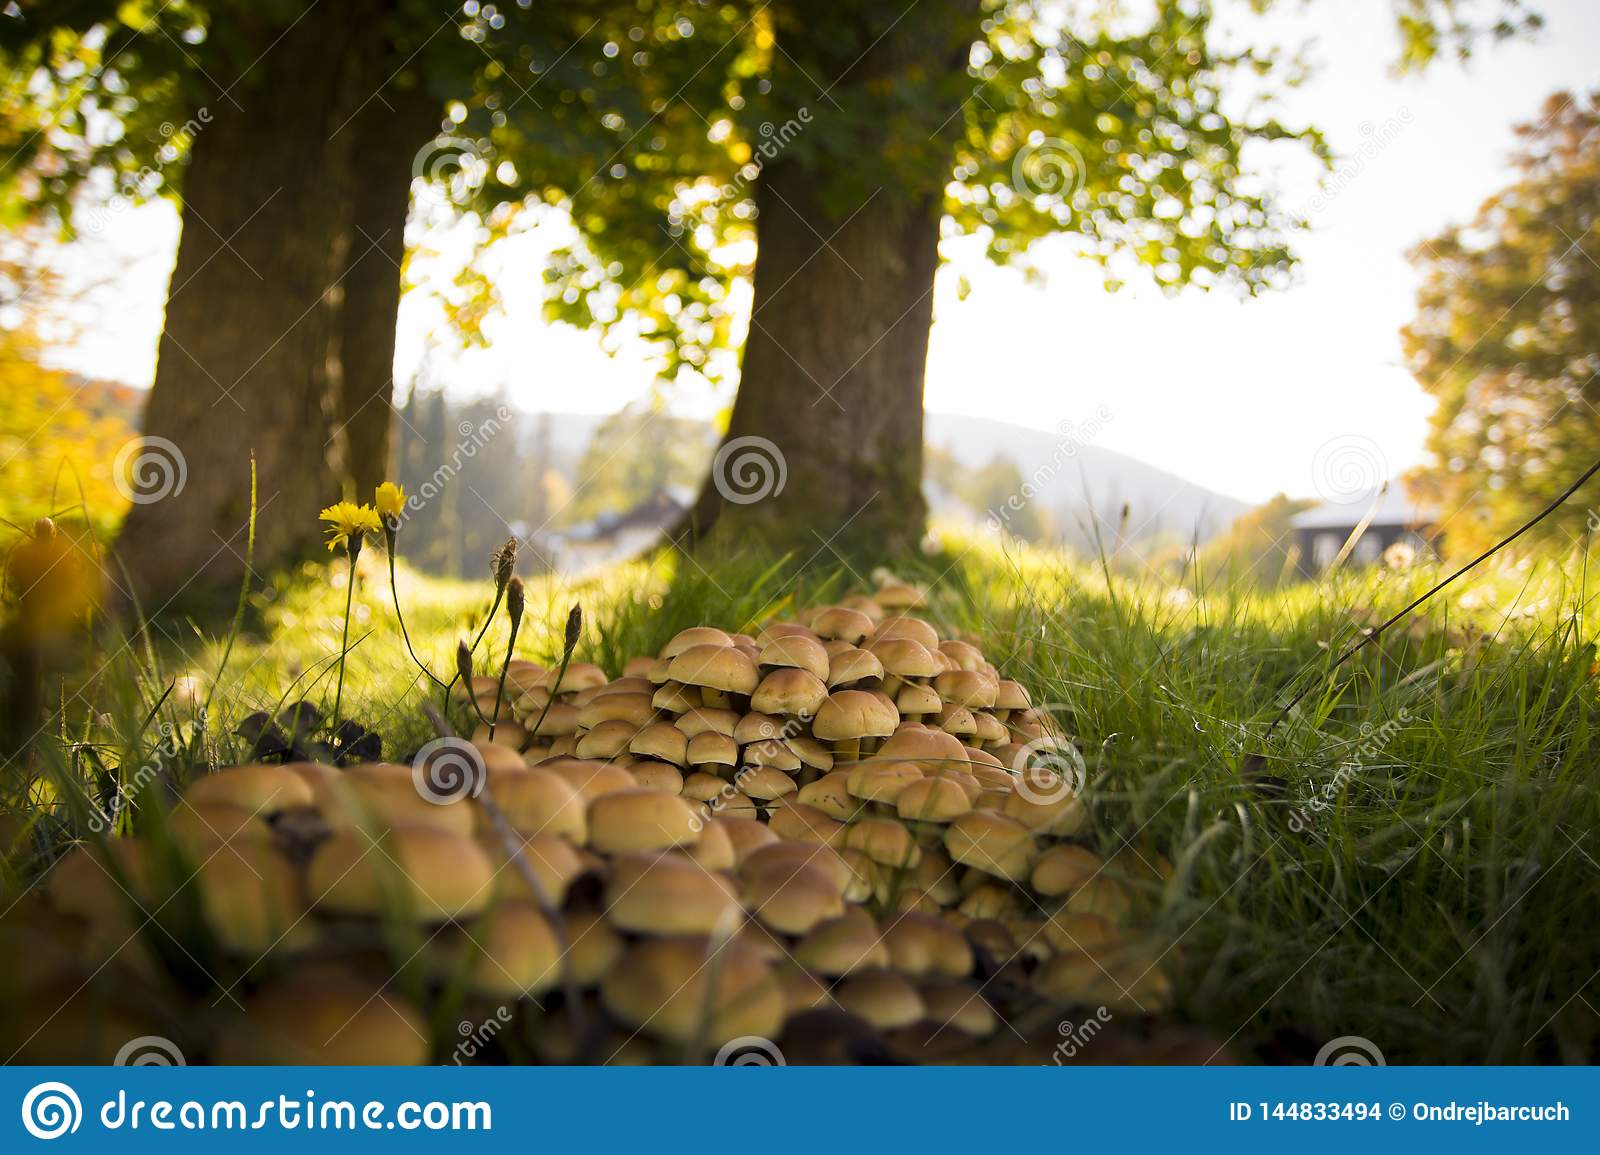 Small mushrooms growing next to trees and grass